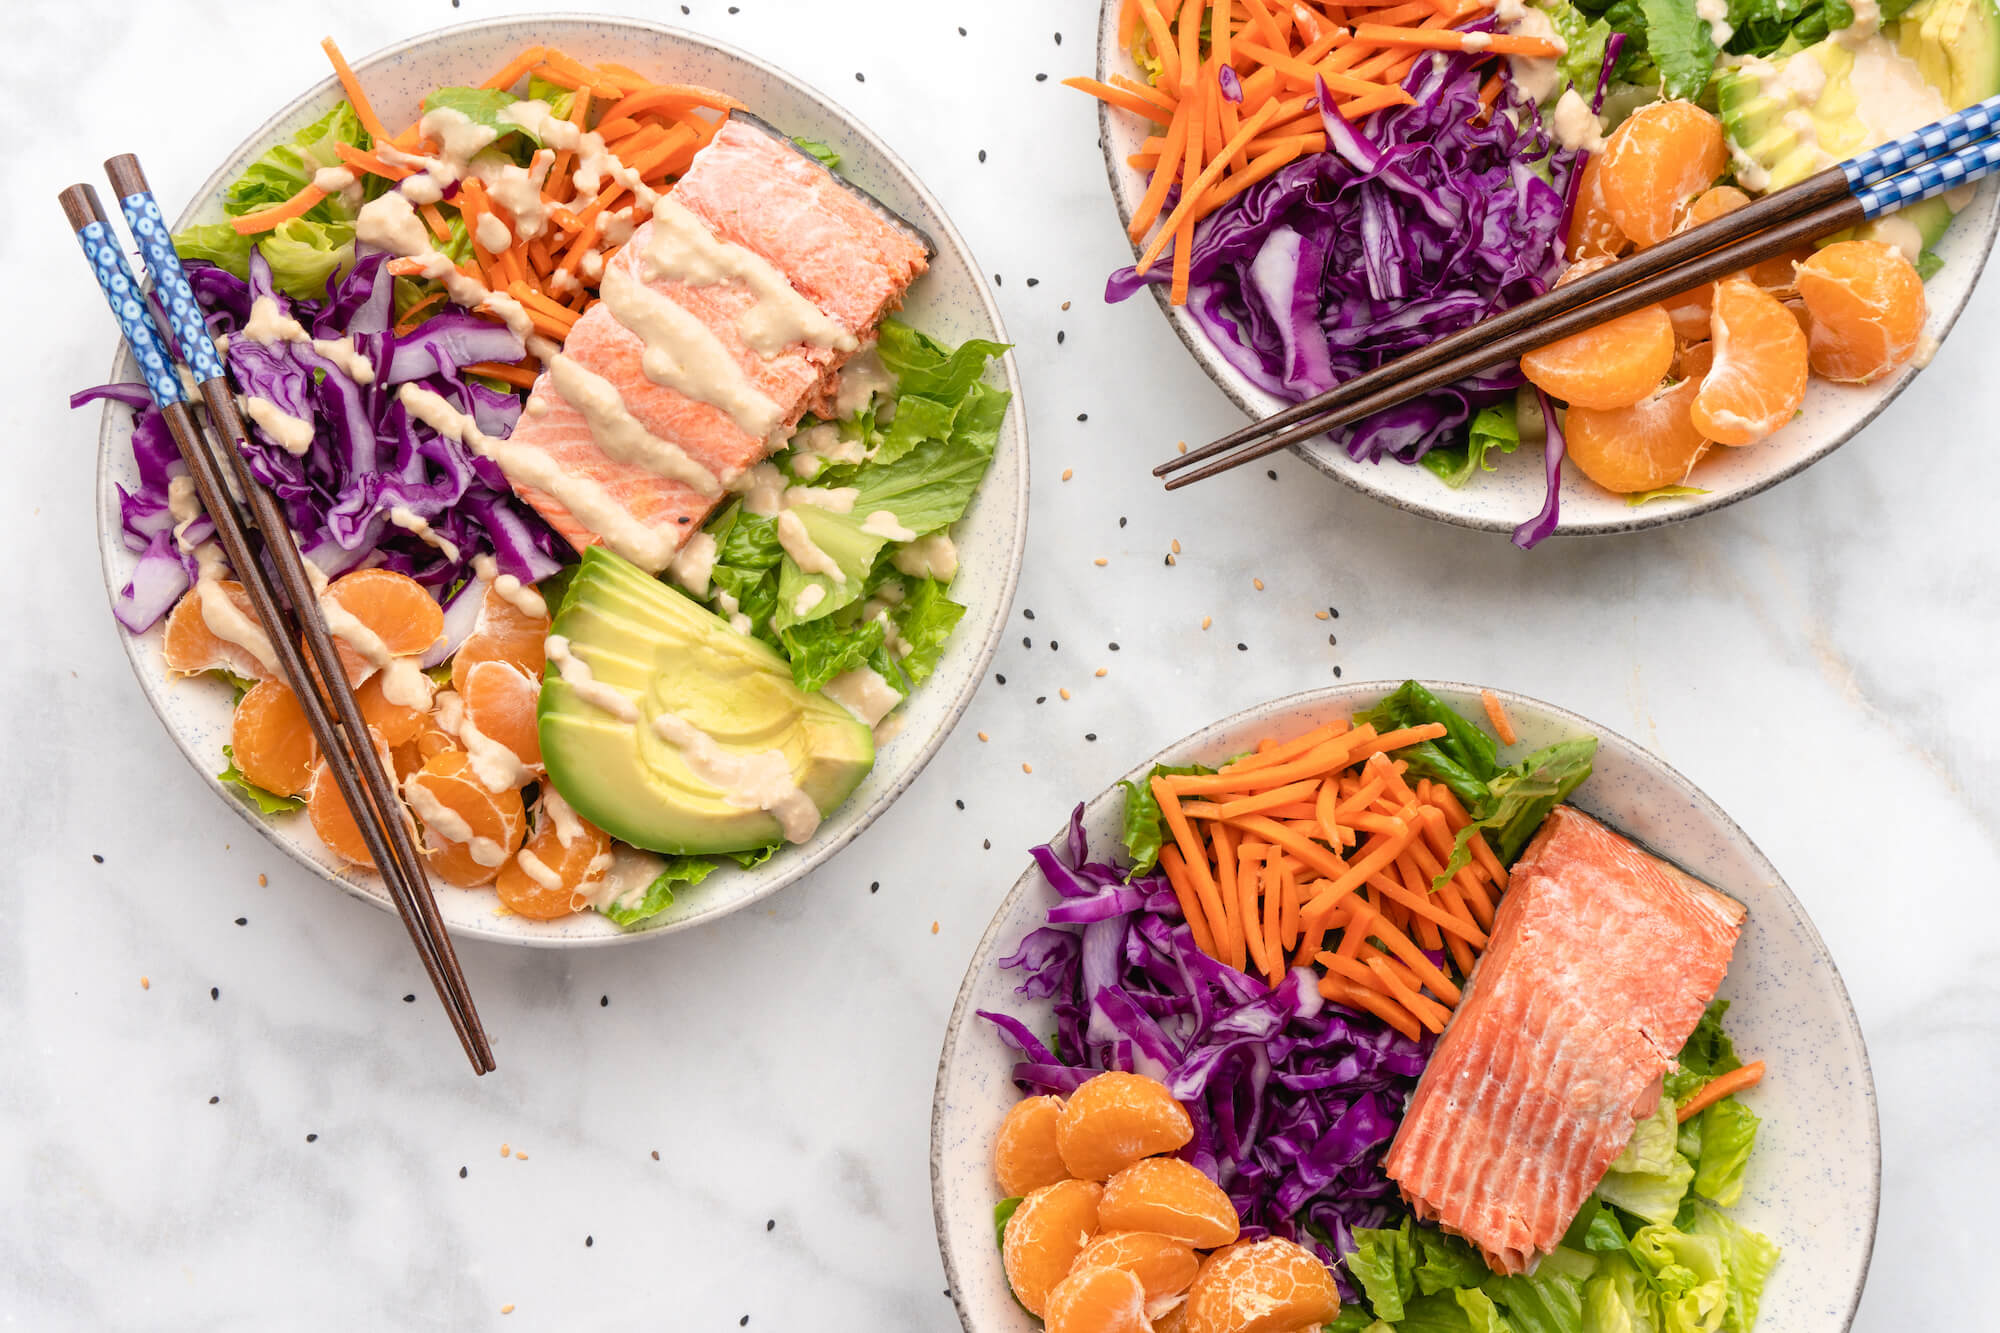 The PlateJoy Blog: 5 Fish Dishes That Will Supercharge Your Healthy Meal  Plan